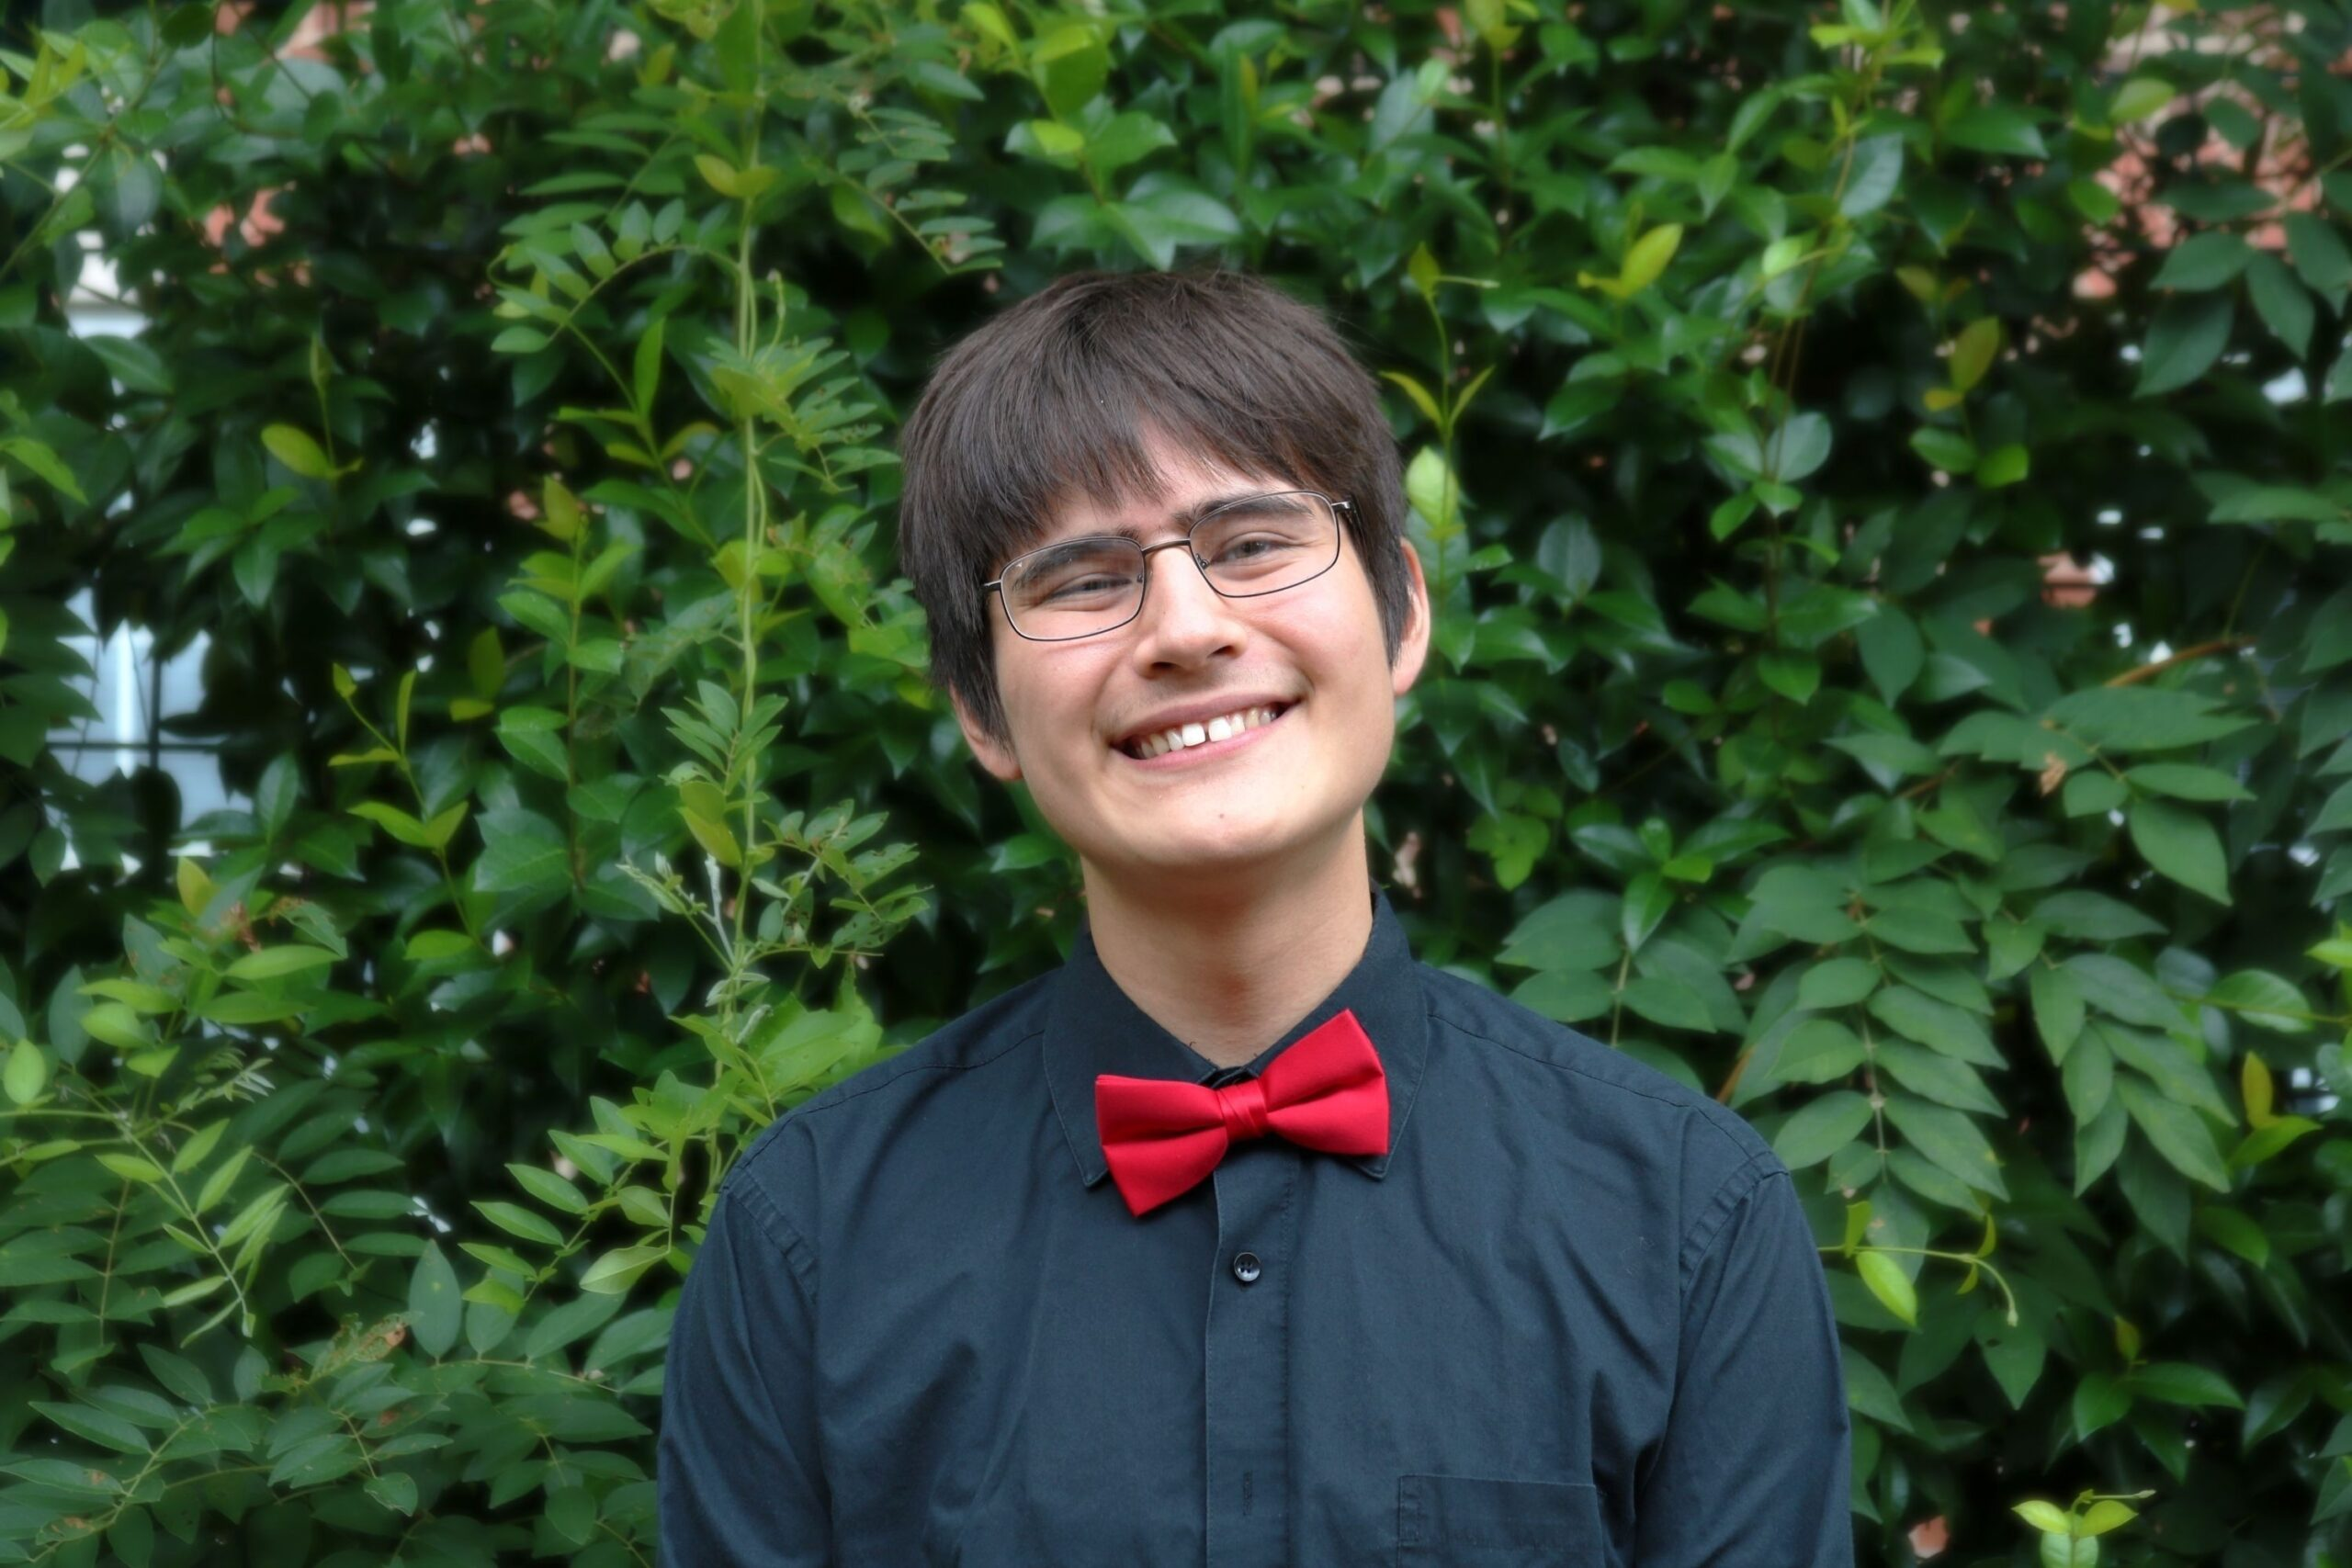 Young asian american mal in black dress shirt and red bowtie wearing eye glasses smiling broadly in front of greenery wall